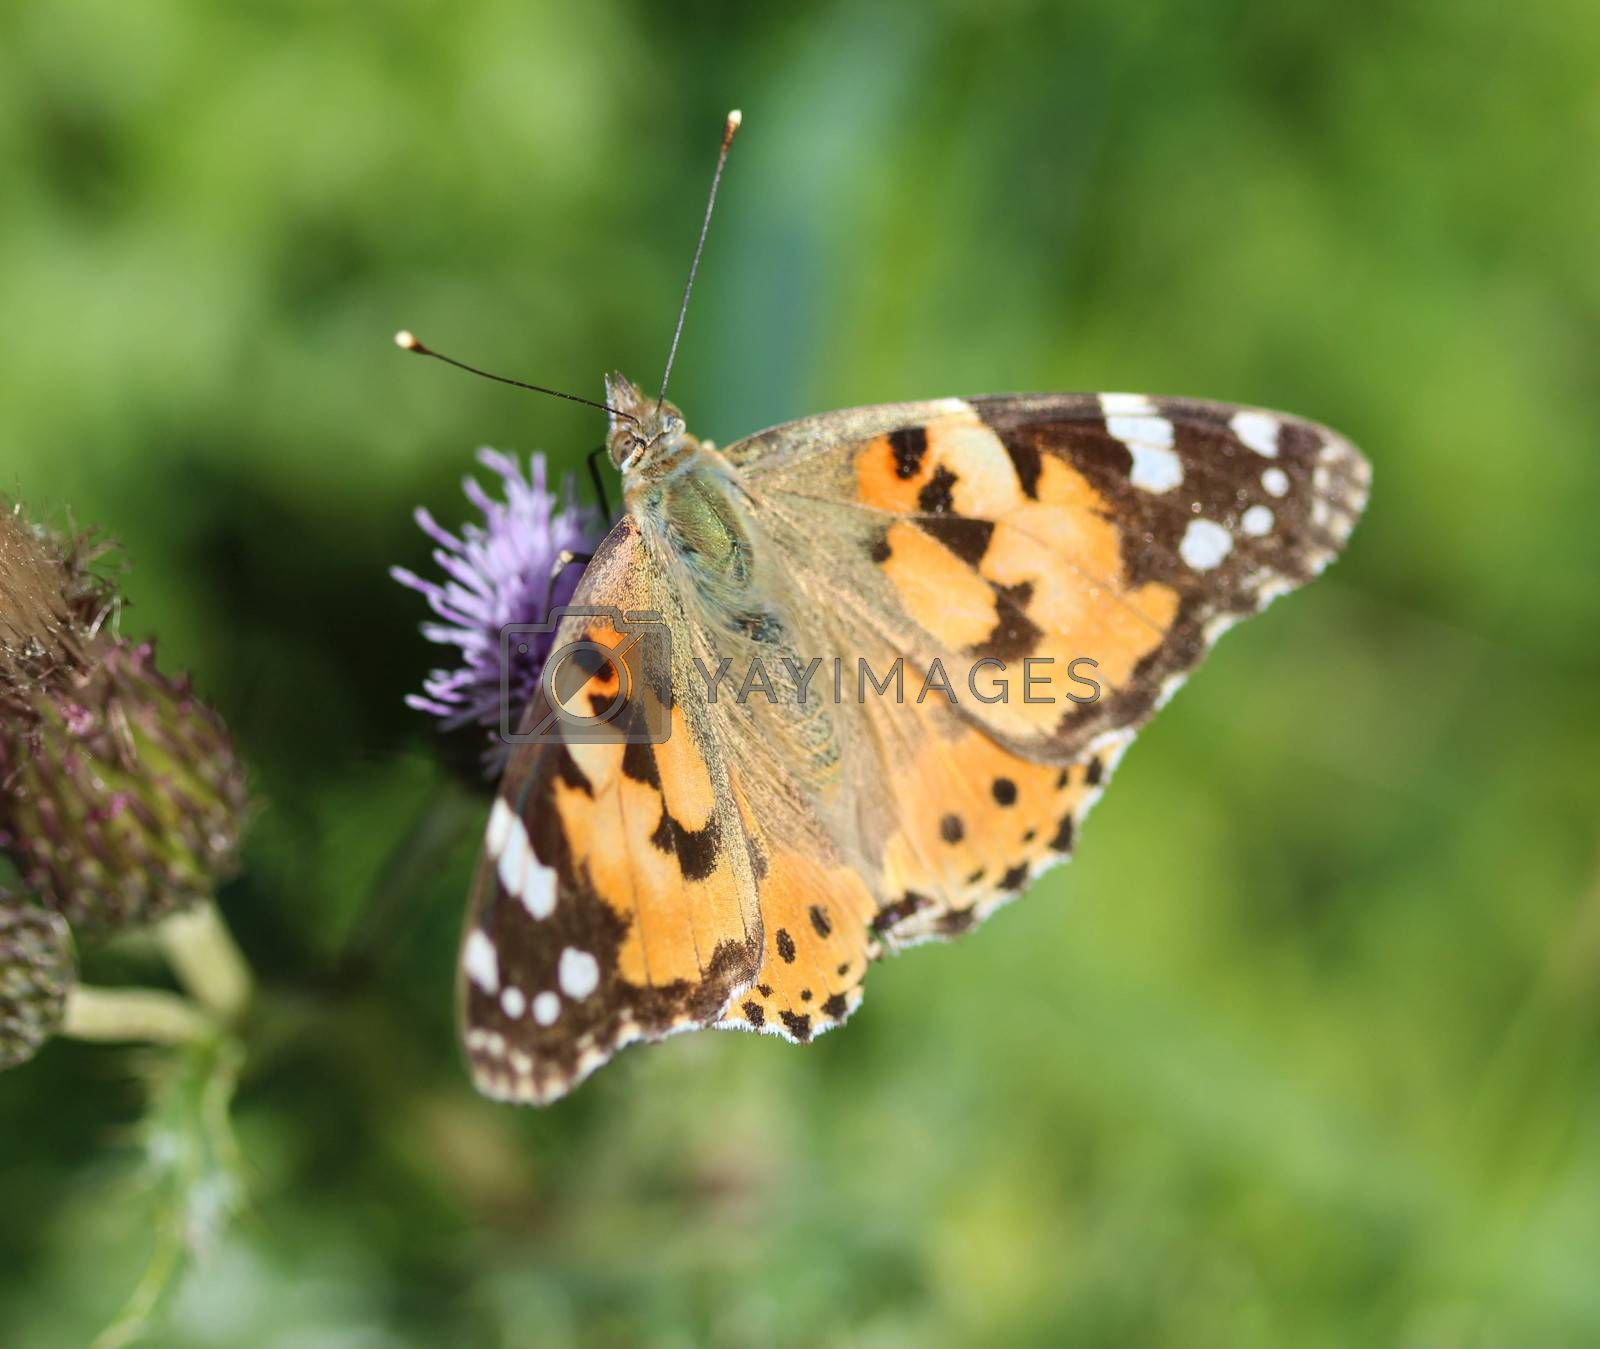 Royalty free image of Vanessa cardui a colourful butterfly, known as the painted lady, or cosmopolitan, resting on a thistle flower by michaelmeijer